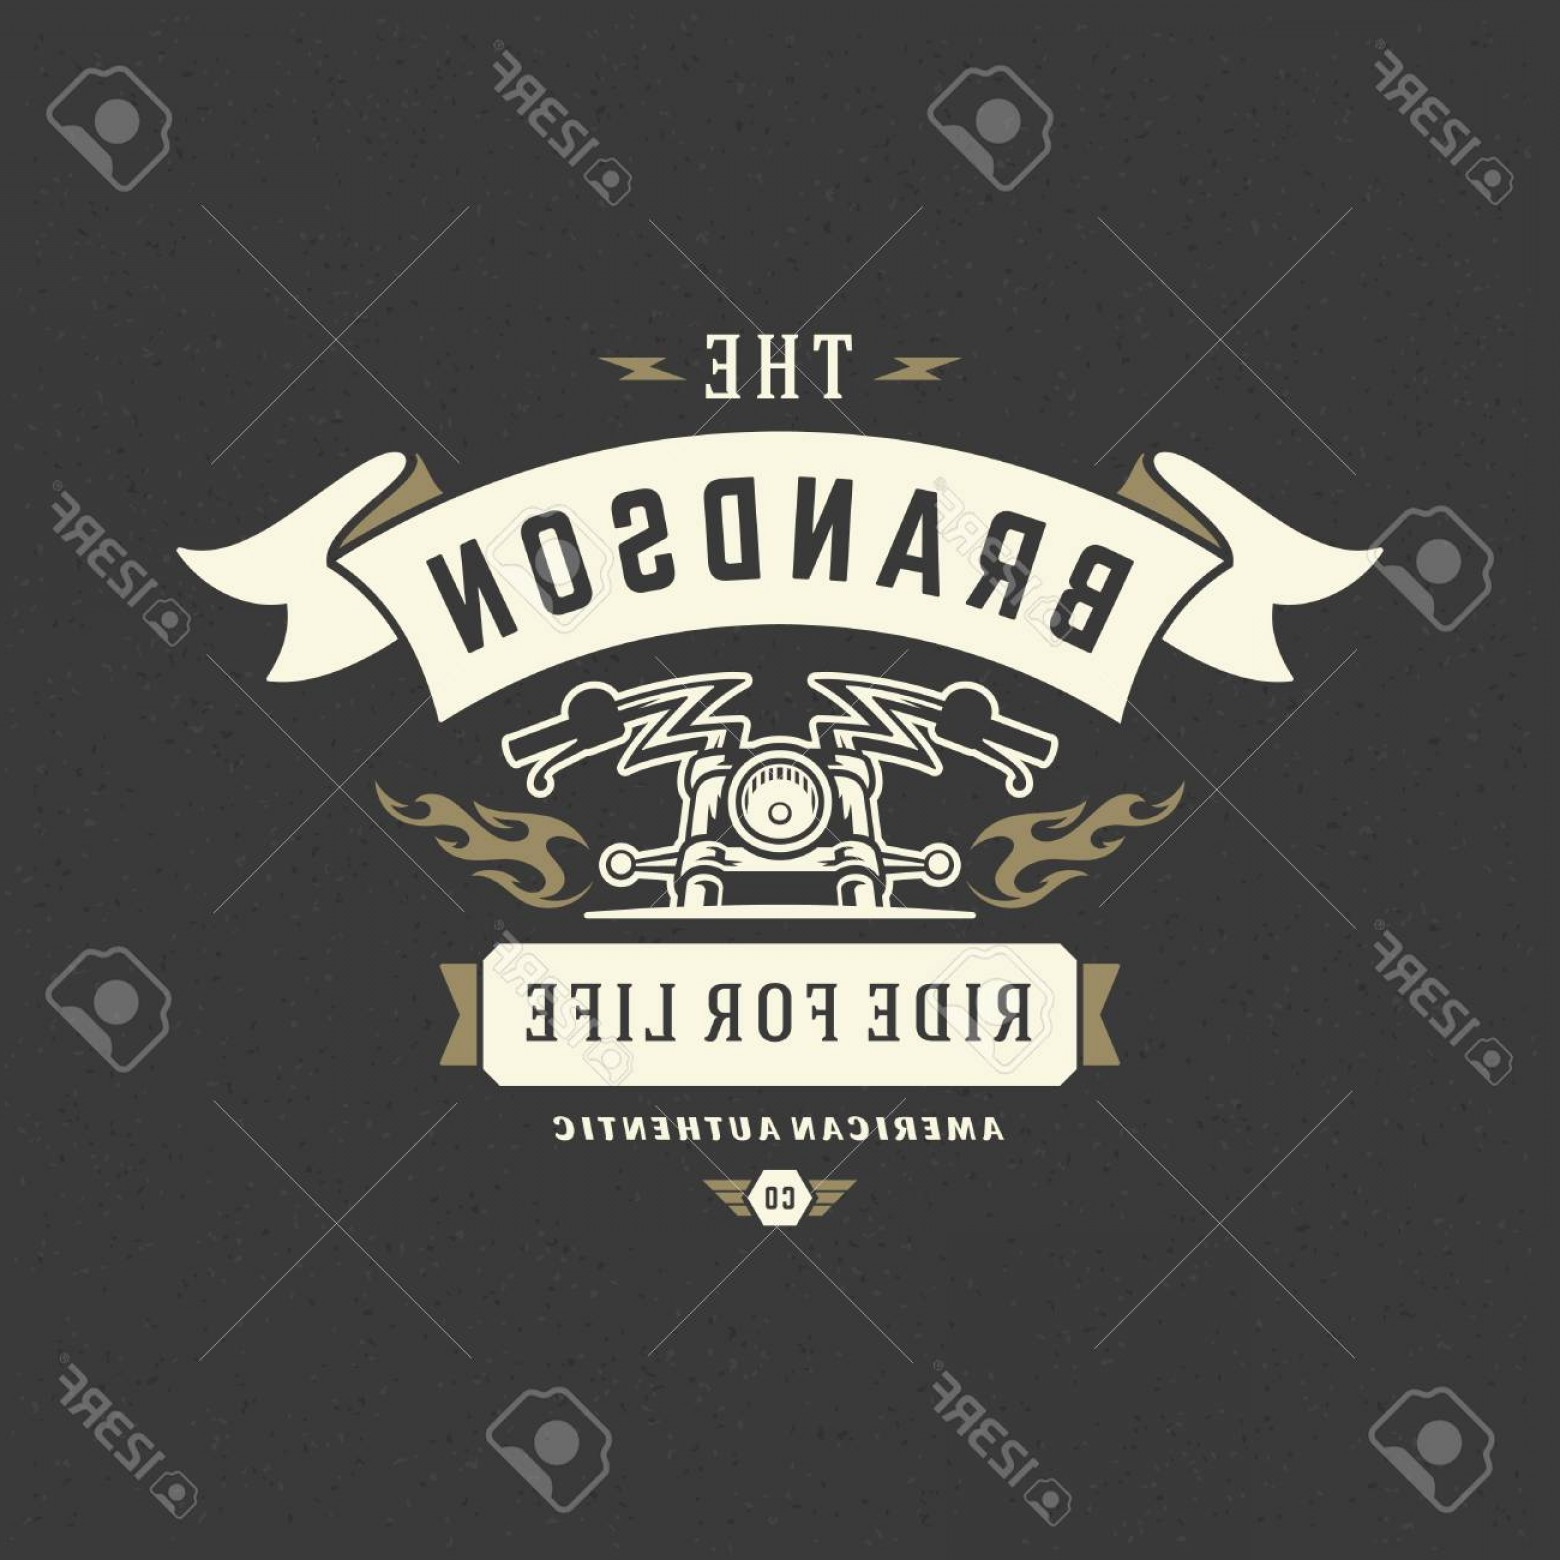 Motorcycle Club Vector: Photostock Vector Motorcycle Club Logo Template Vector Design Element Vintage Style For Label Or Badge Retro Illustrat